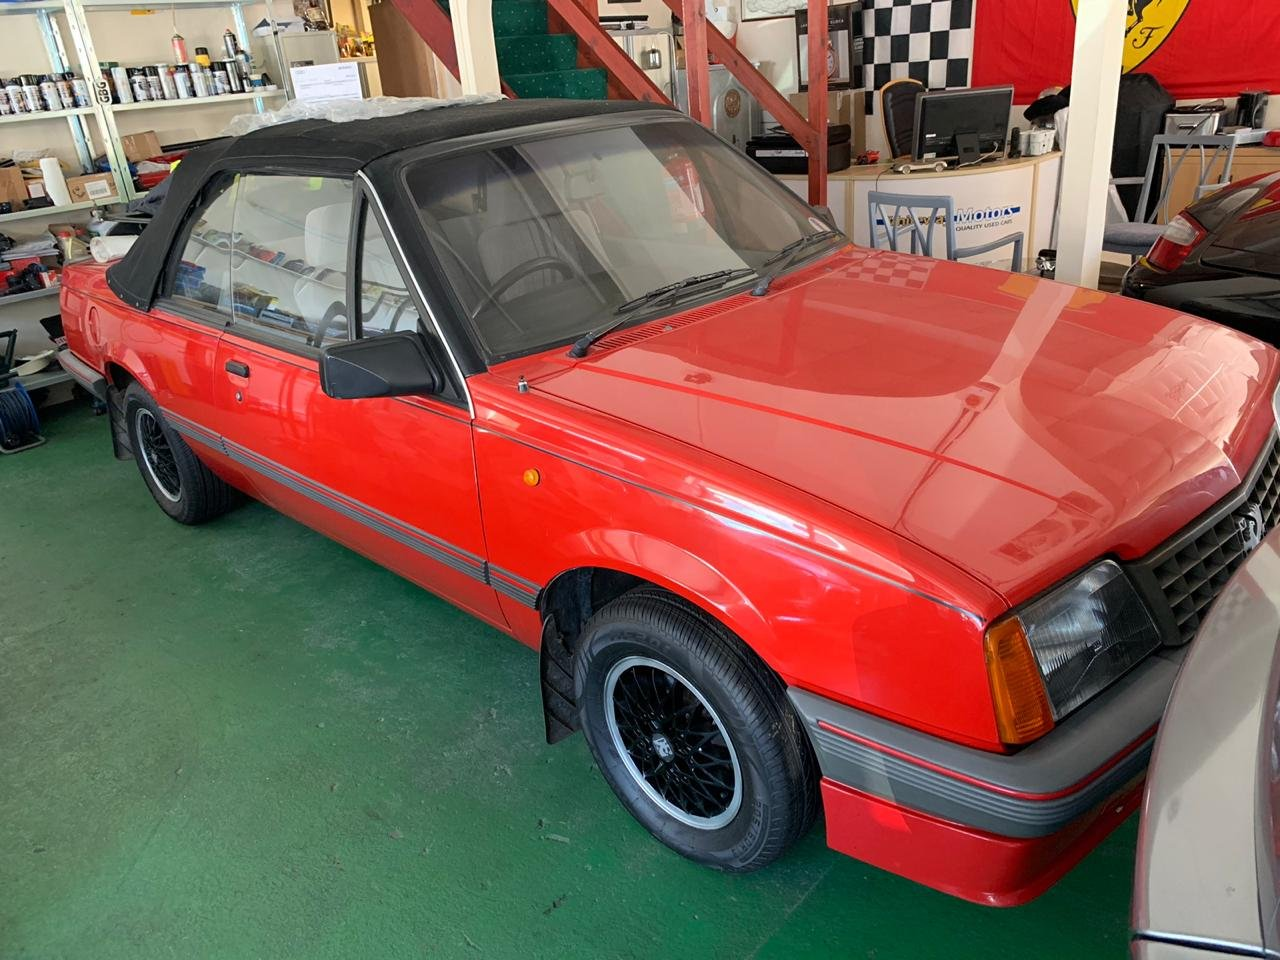 1986 Vauxhall Cavalier Cabriolet very low miles For Sale (picture 1 of 5)